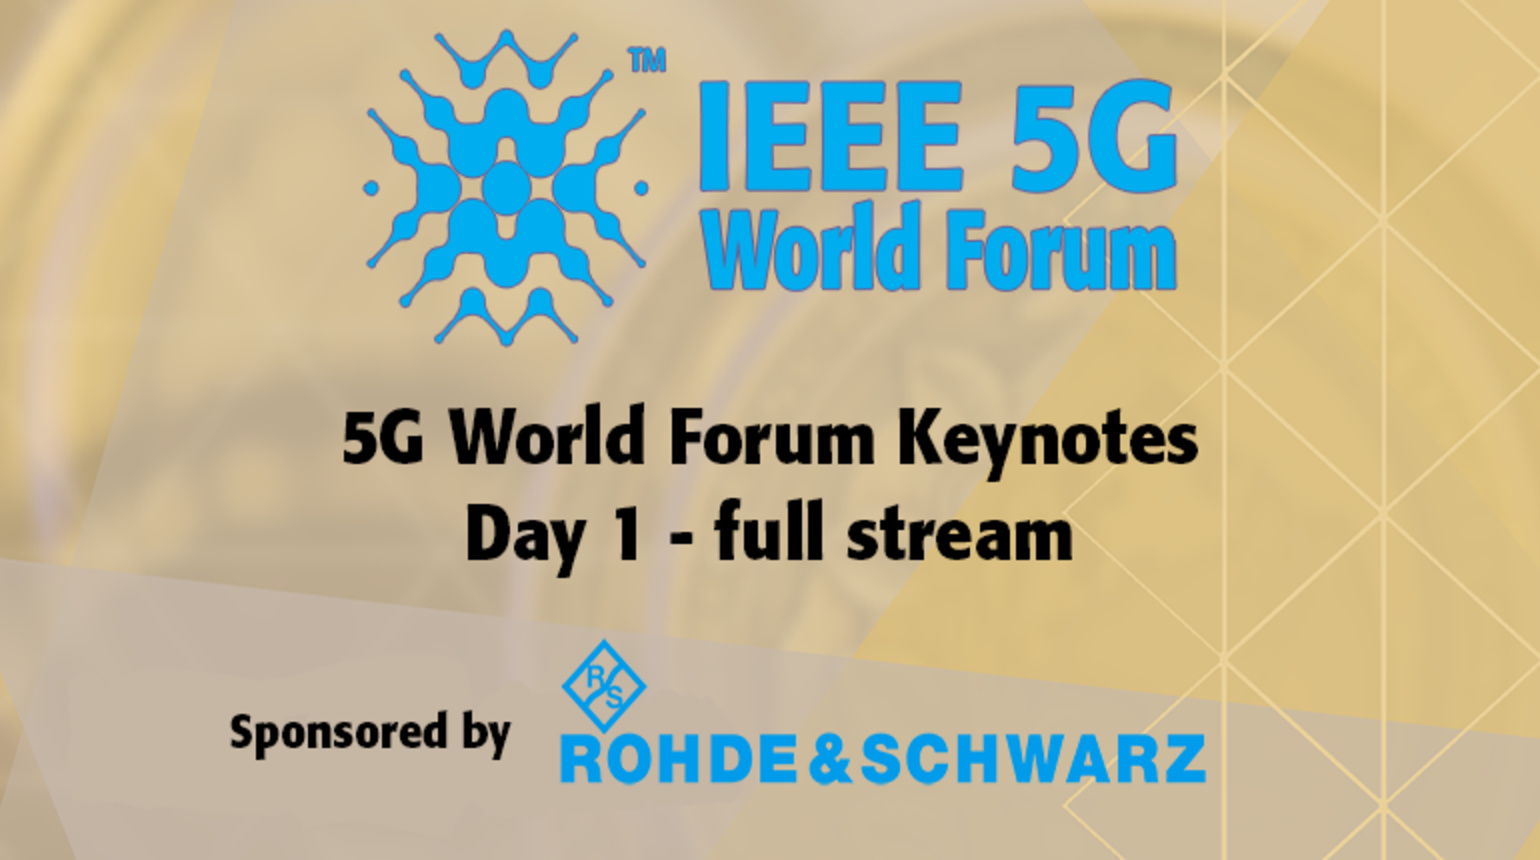 IEEE 5G World Forum Keynotes - full stream of Day 1, 2018